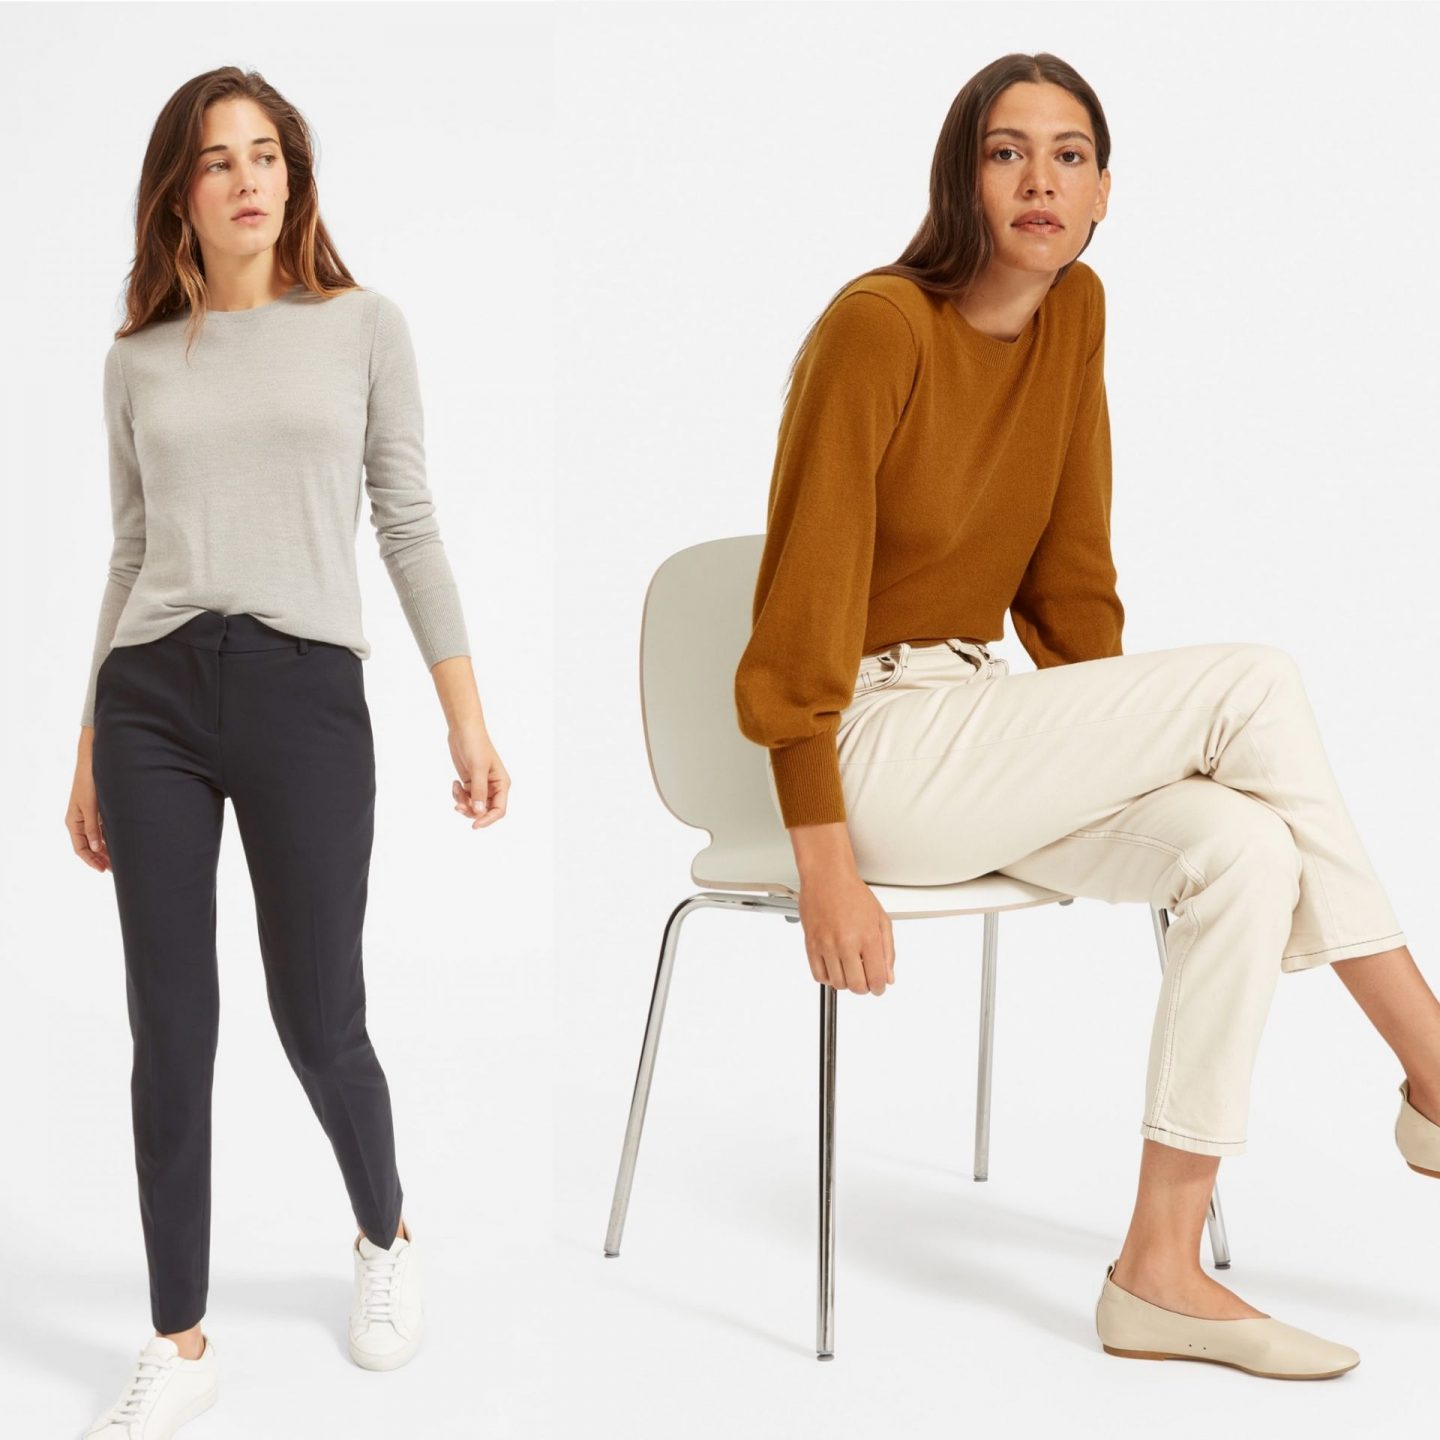 My top workwear picks from Everlane